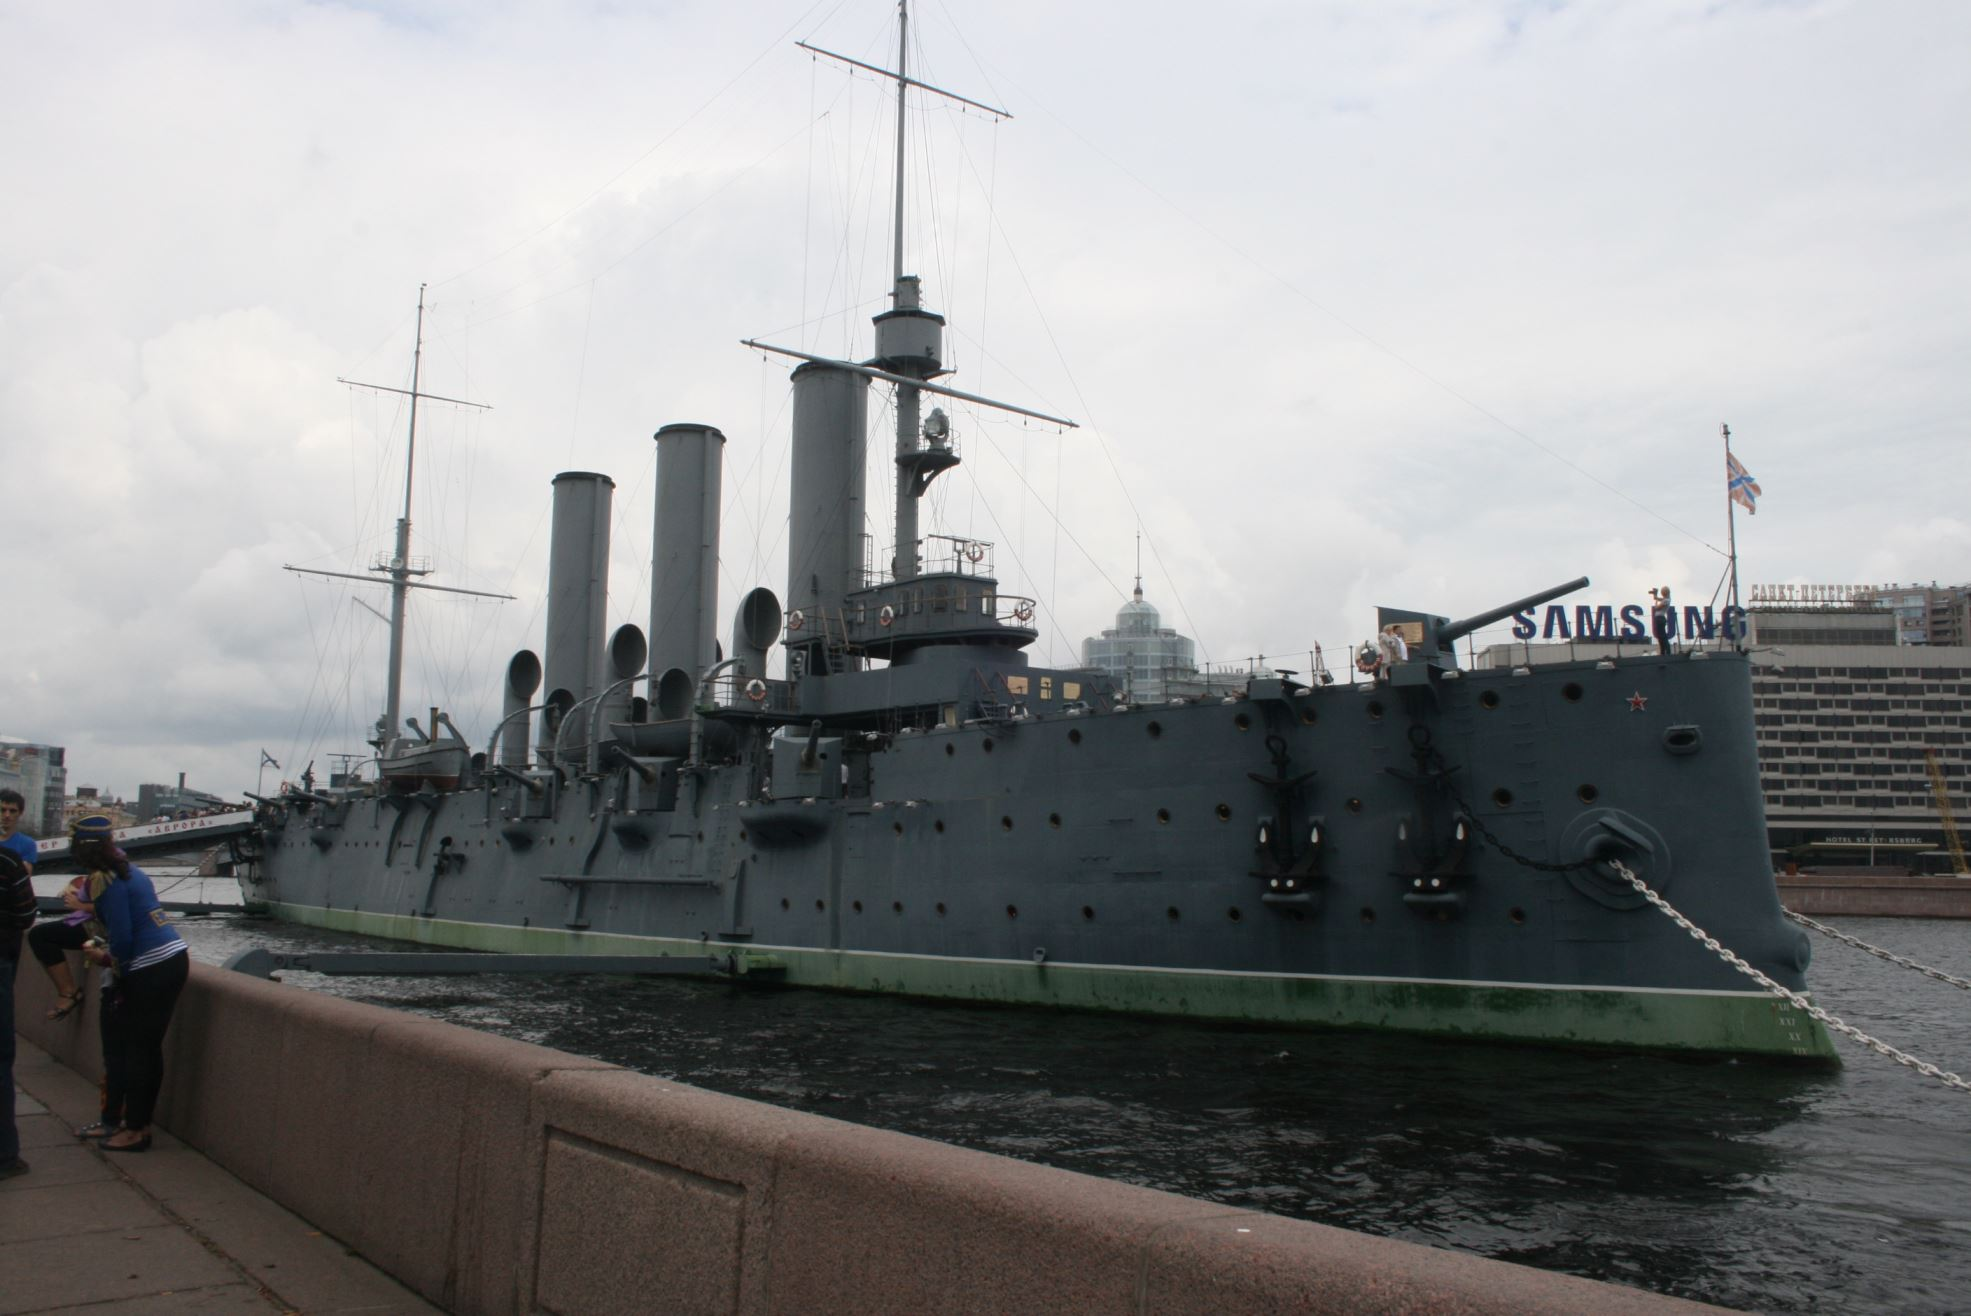 Aurora cruiser St Petersburg